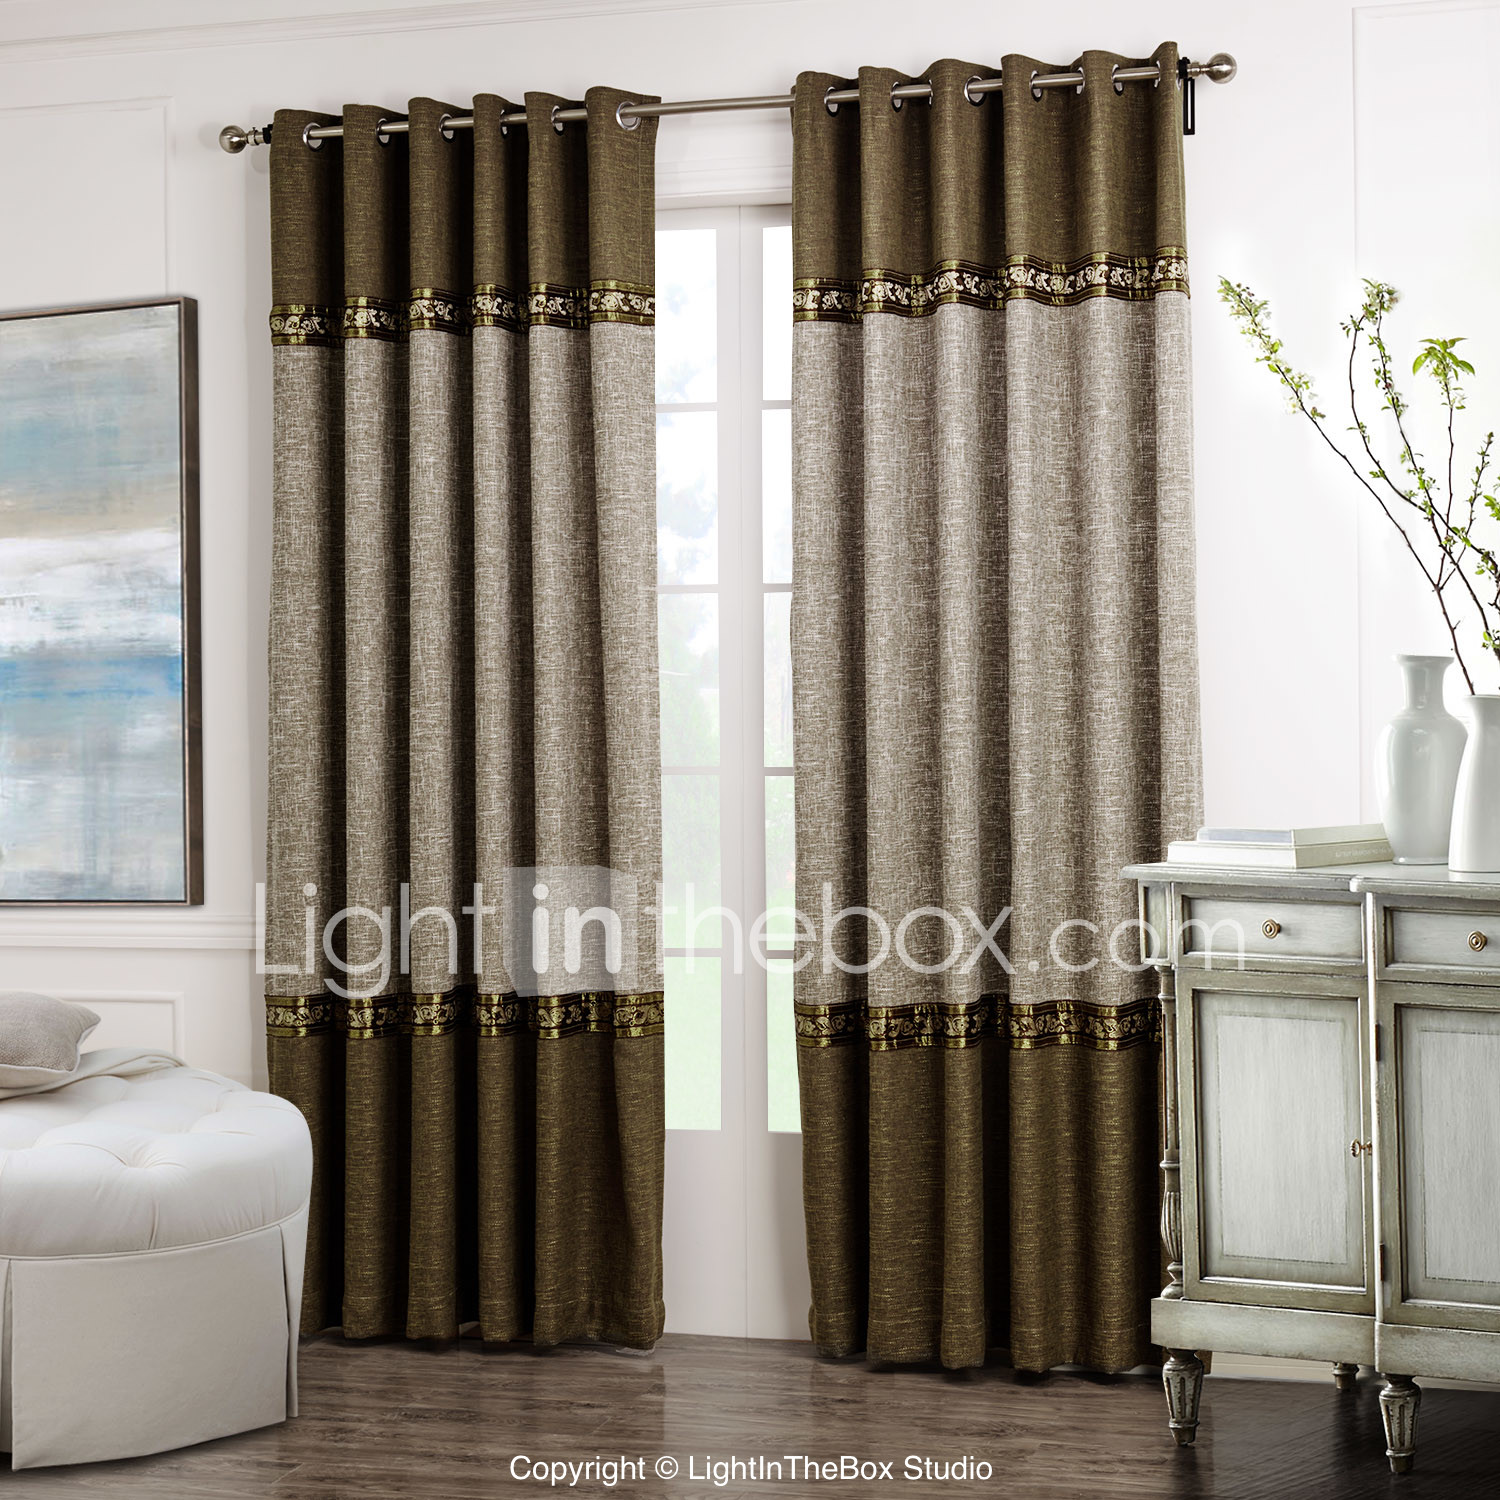 Designer curtain panels - Two Panels Curtain Neoclassical Solid Living Room Polyester Material Curtains Drapes Home Decoration For Window